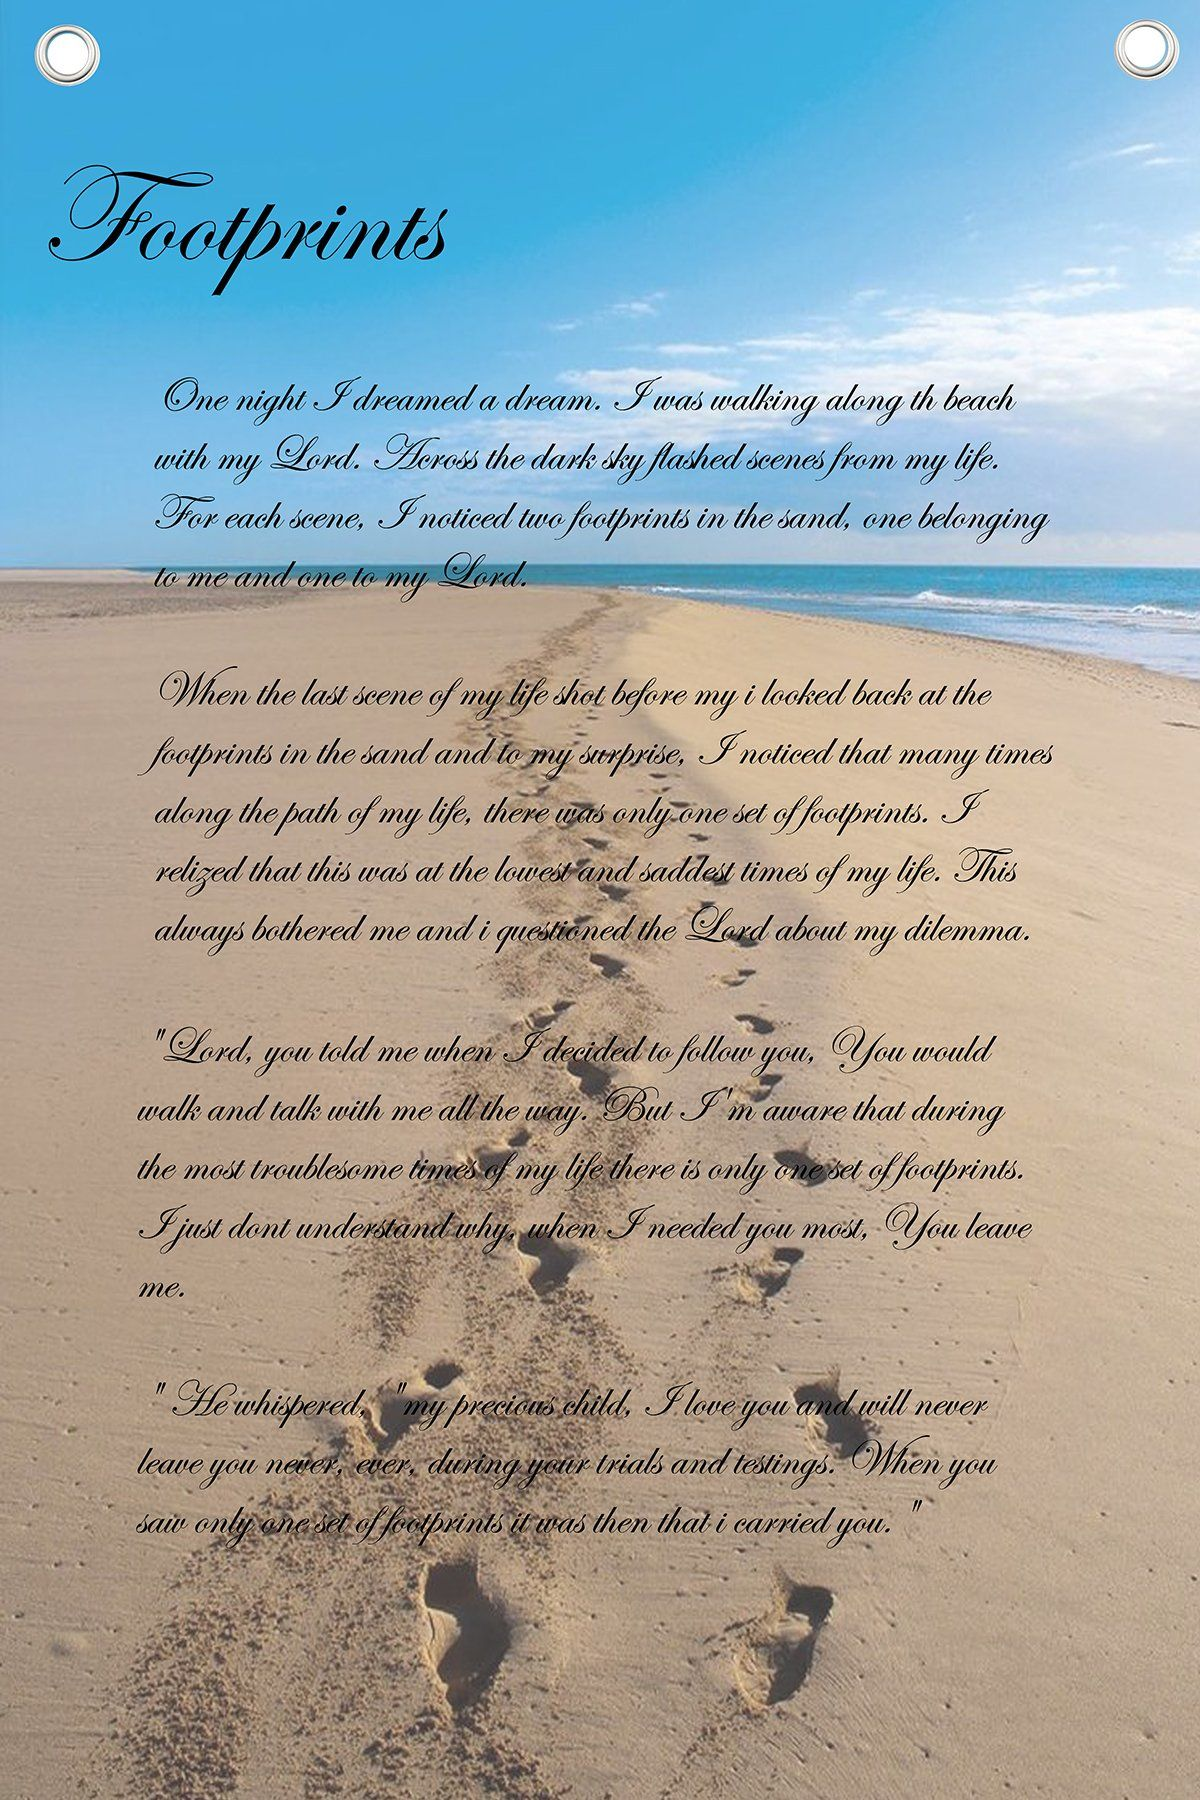 photograph about Poem Footprints in the Sand Printable called Black And White Footprints Inside of The Sand Poem - Investigating Mars